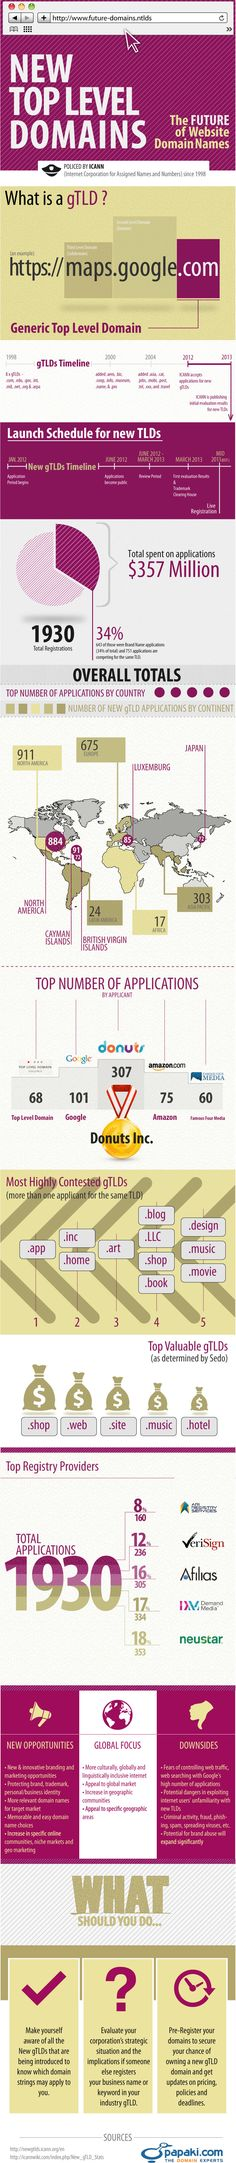 """What particular extensions can you expect to see making an appearance  in domain names in the near future?  Check out the following """"New Top  Level Domains: The Future of Website Domain Names"""" infographic for the inside scoop."""